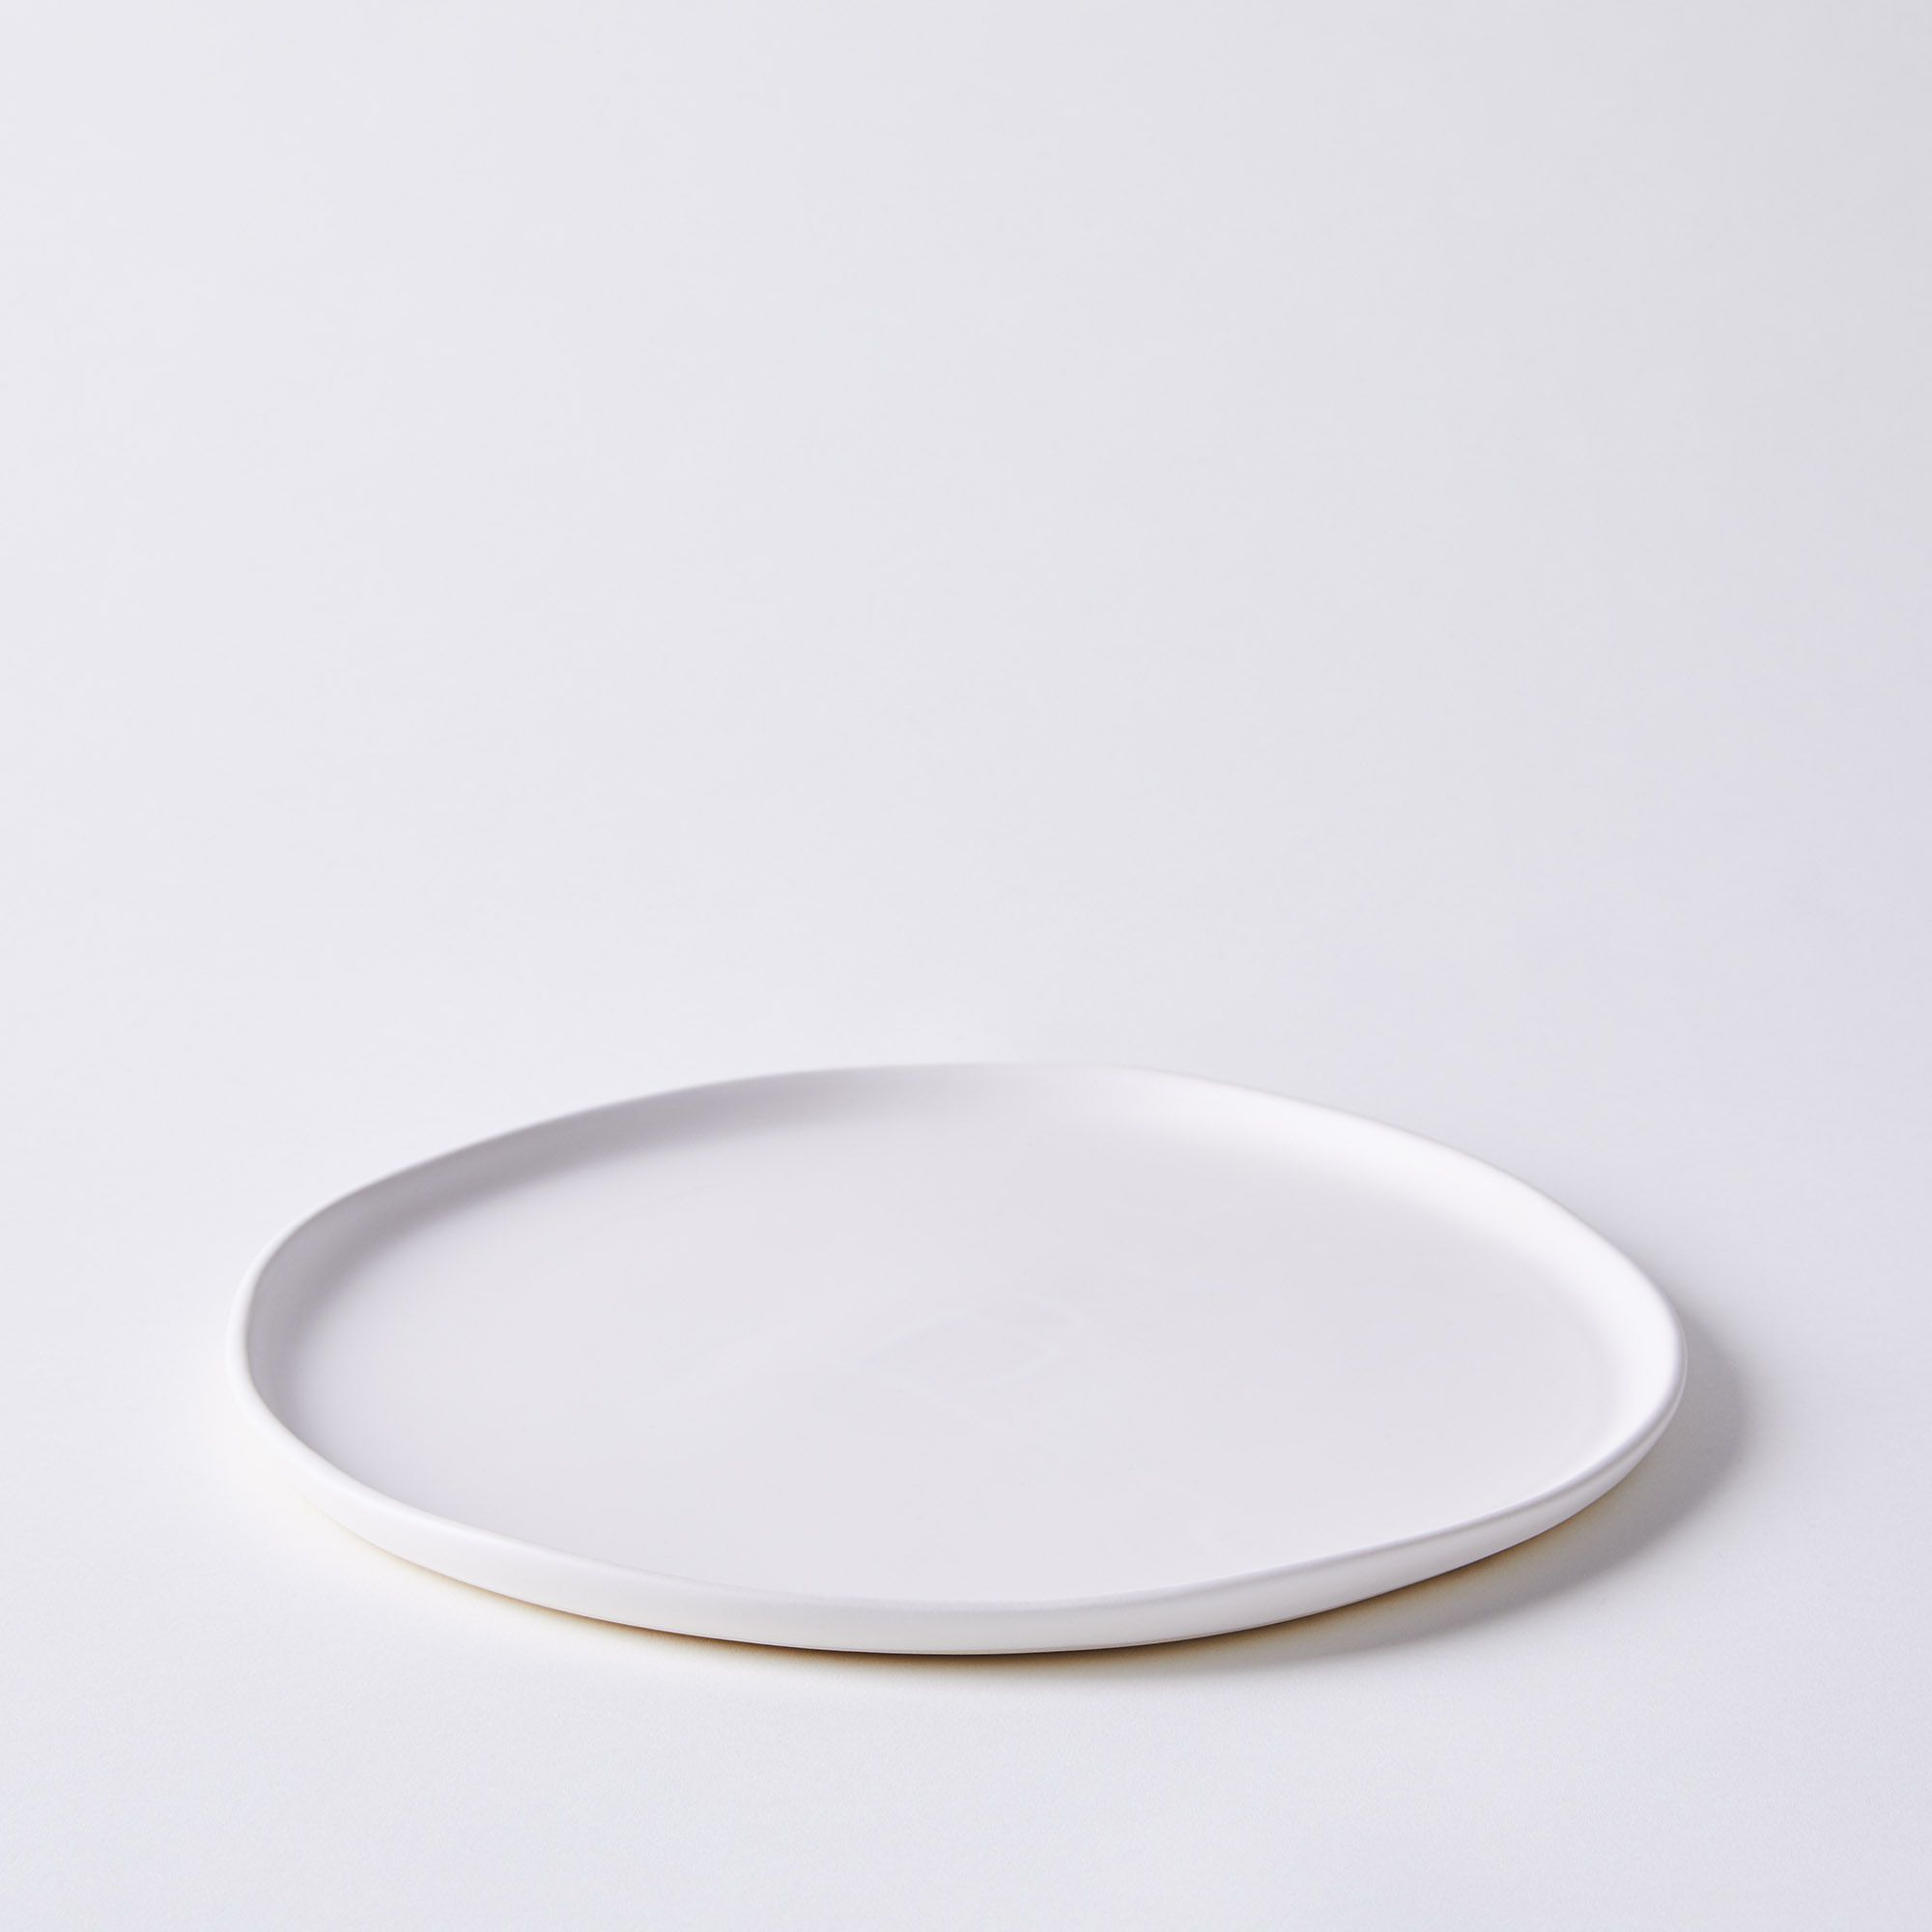 Alex Marshall Studiosalex Marshall Studios Design Your Own Dinnerware Organic Edge Plate Matte White Dinner Plate Dailymail